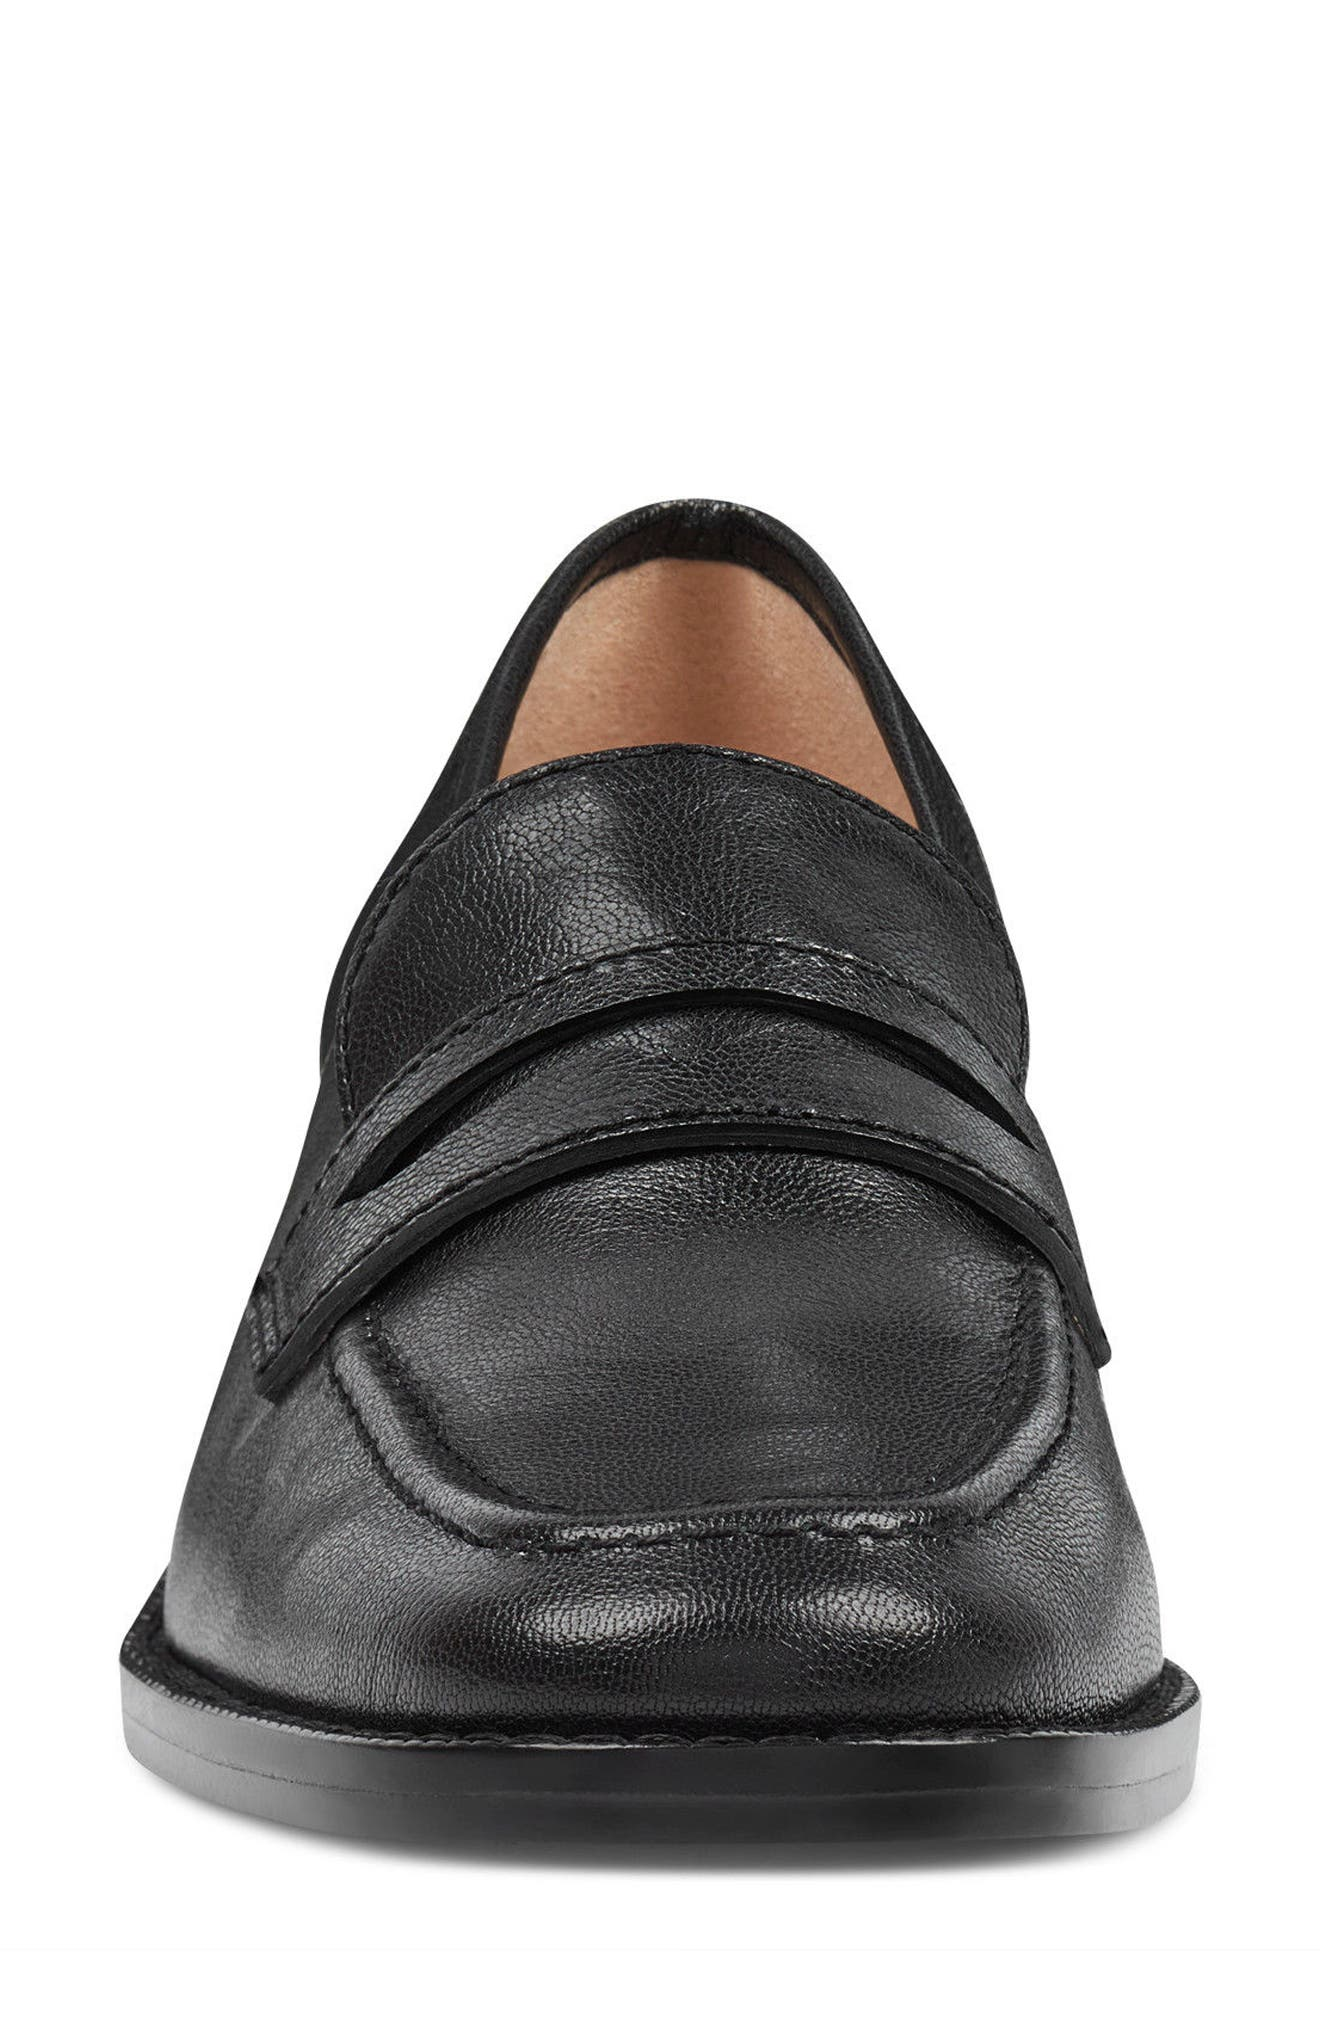 Kimmy - 40th Anniversary Capsule Collection Penny Loafer,                             Alternate thumbnail 4, color,                             BLACK LEATHER